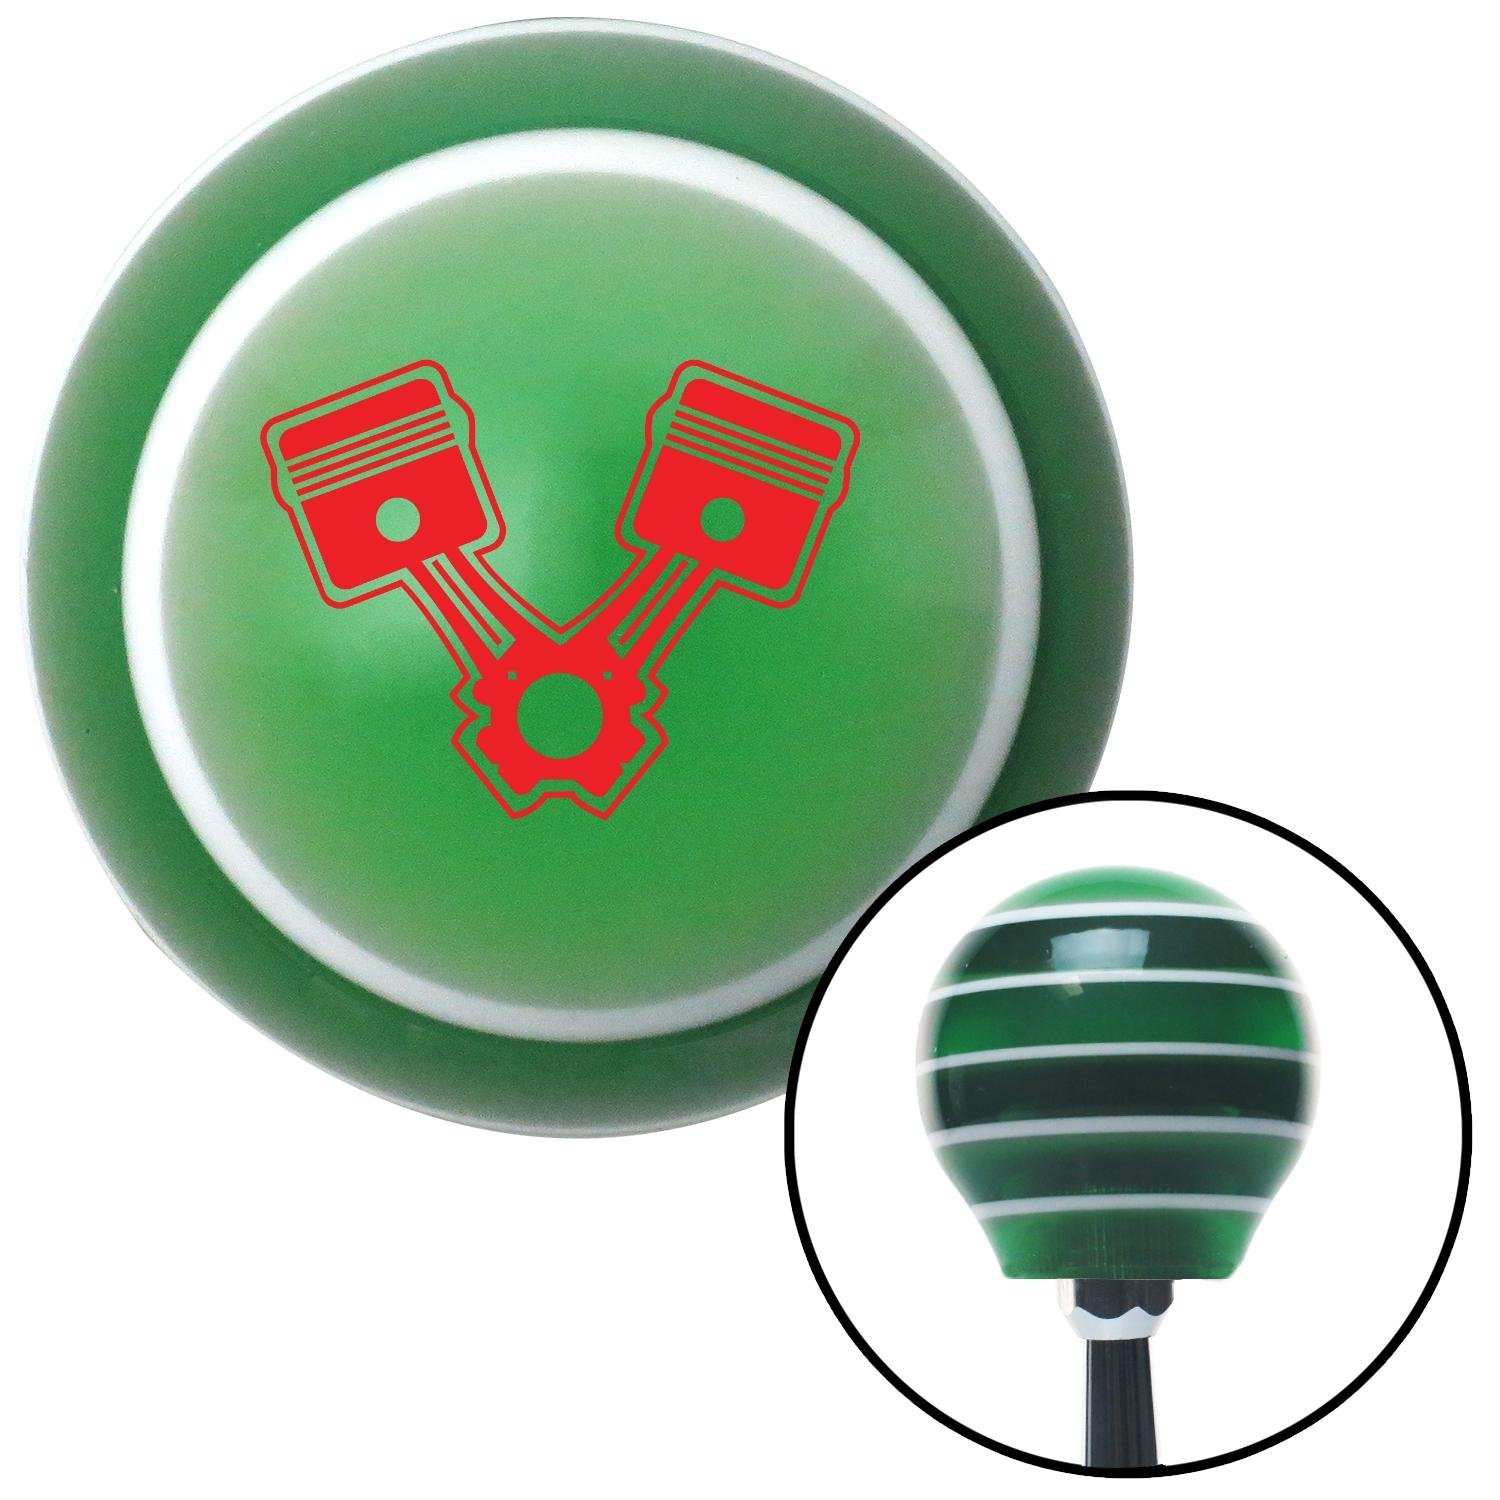 Red 2 Pistons American Shifter 121407 Green Stripe Shift Knob with M16 x 1.5 Insert